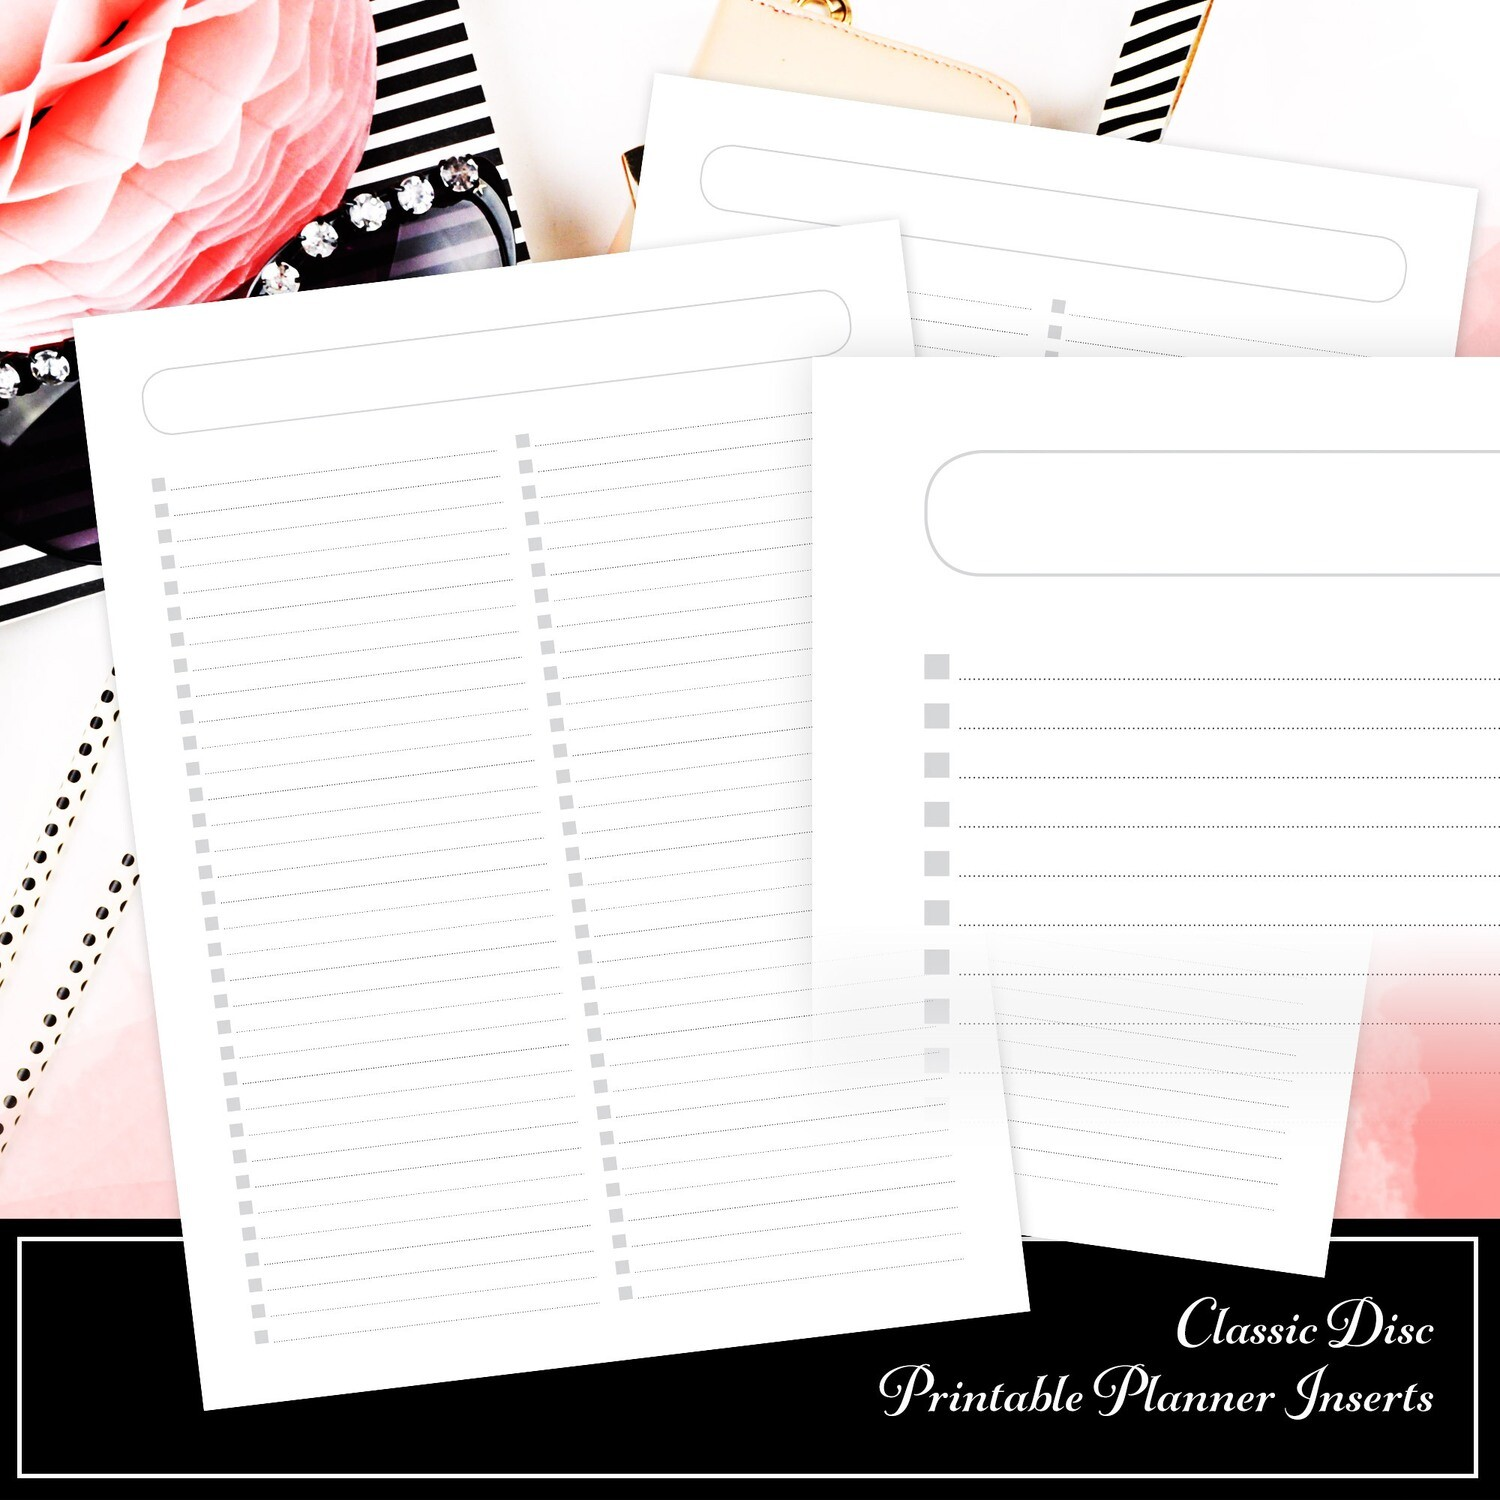 CLASSIC - Checklist Printable Planner Inserts